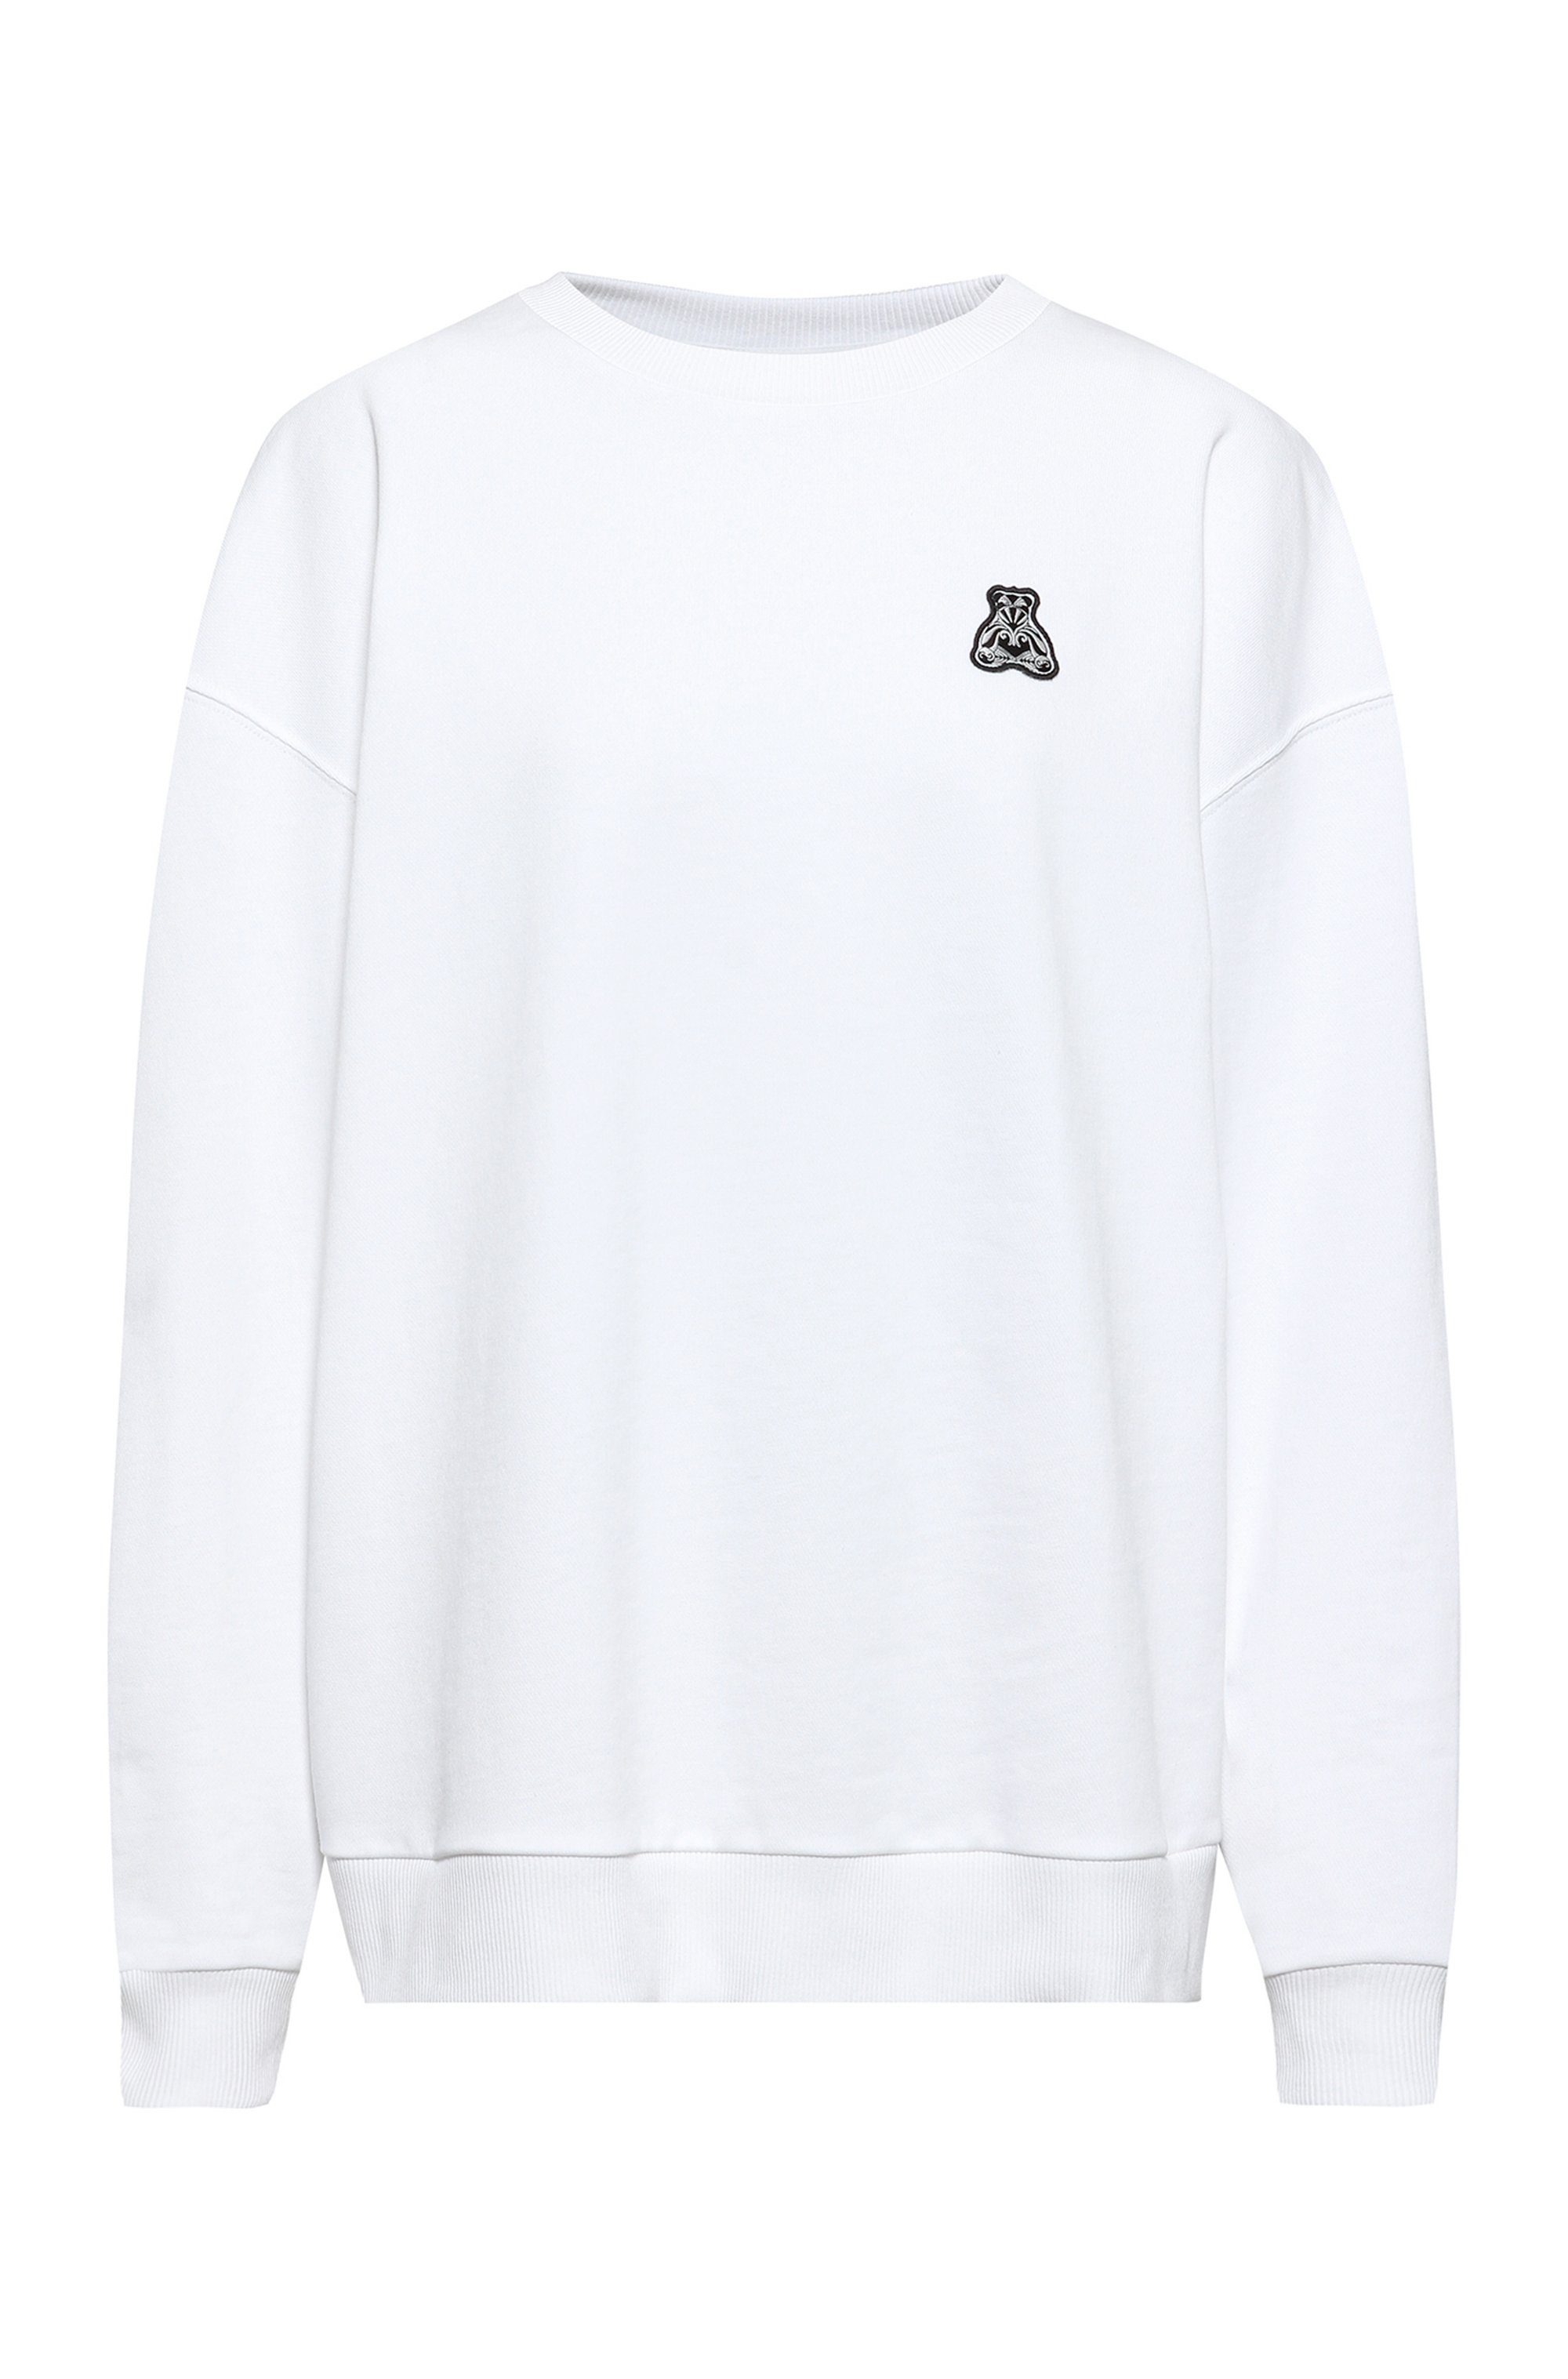 Relaxed-fit sweatshirt in Recot²® cotton with bear artwork, White